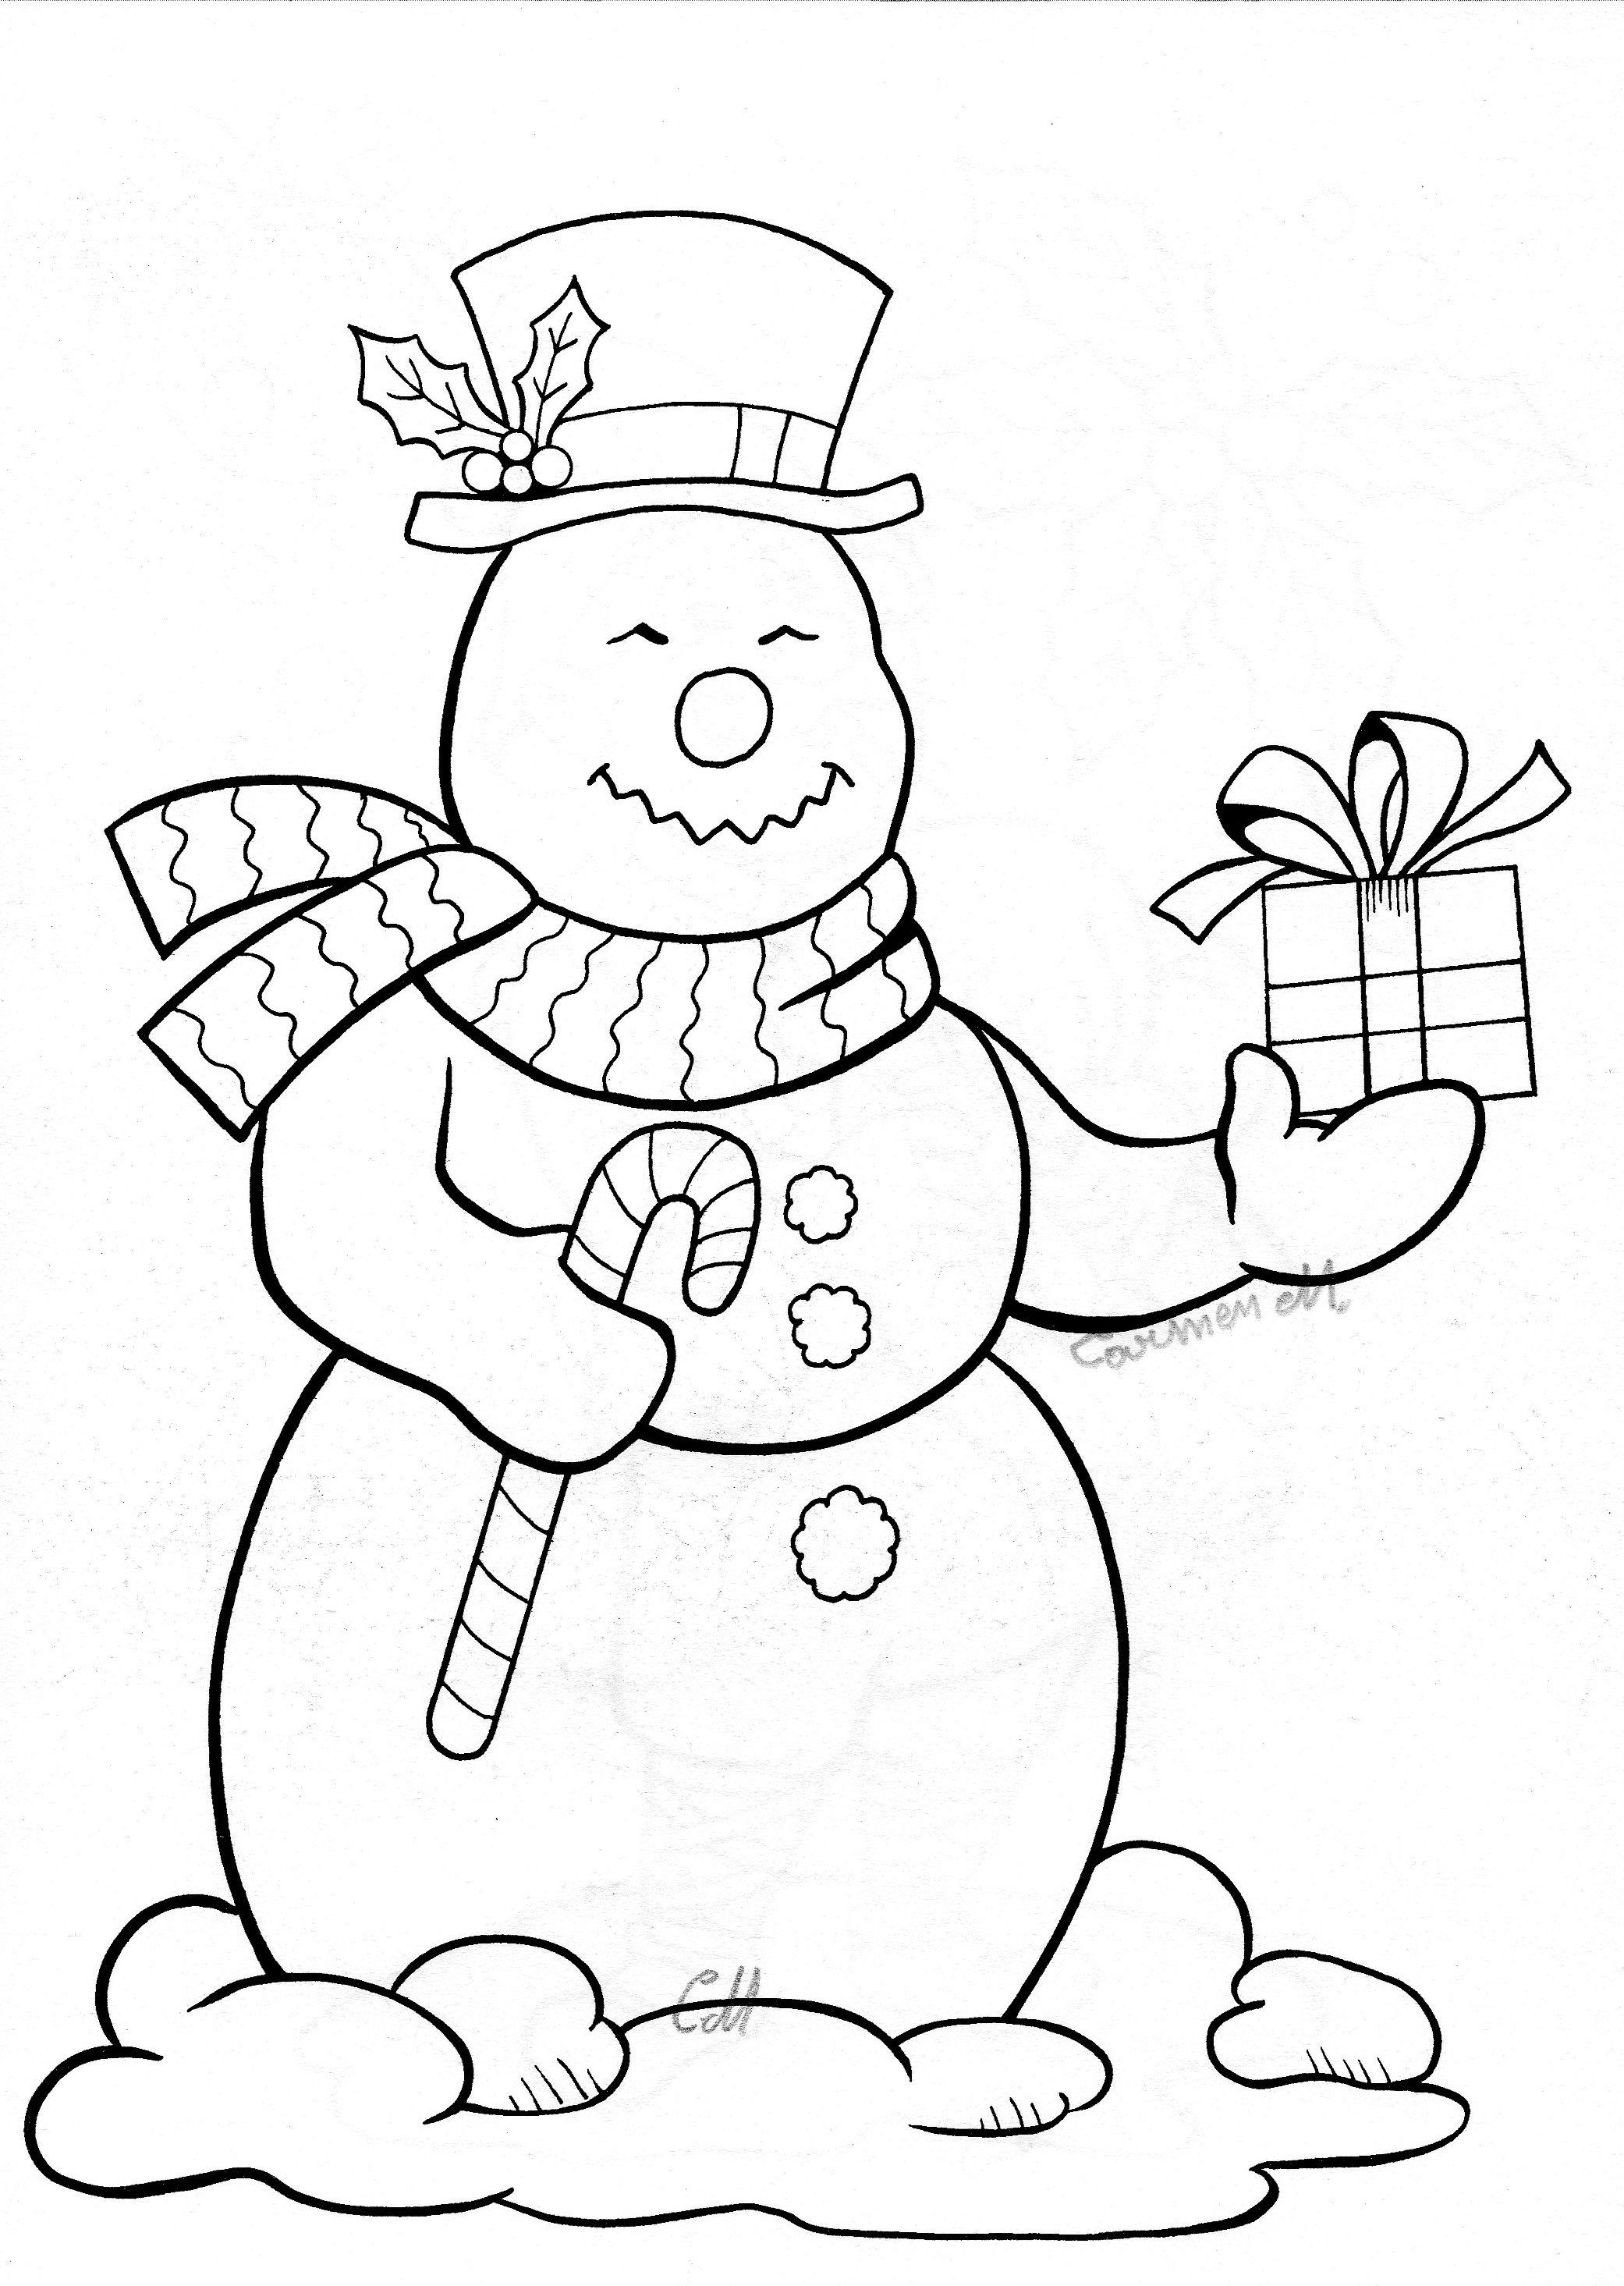 Snowman and Gift | Coloring pages, Christmas embroidery ...